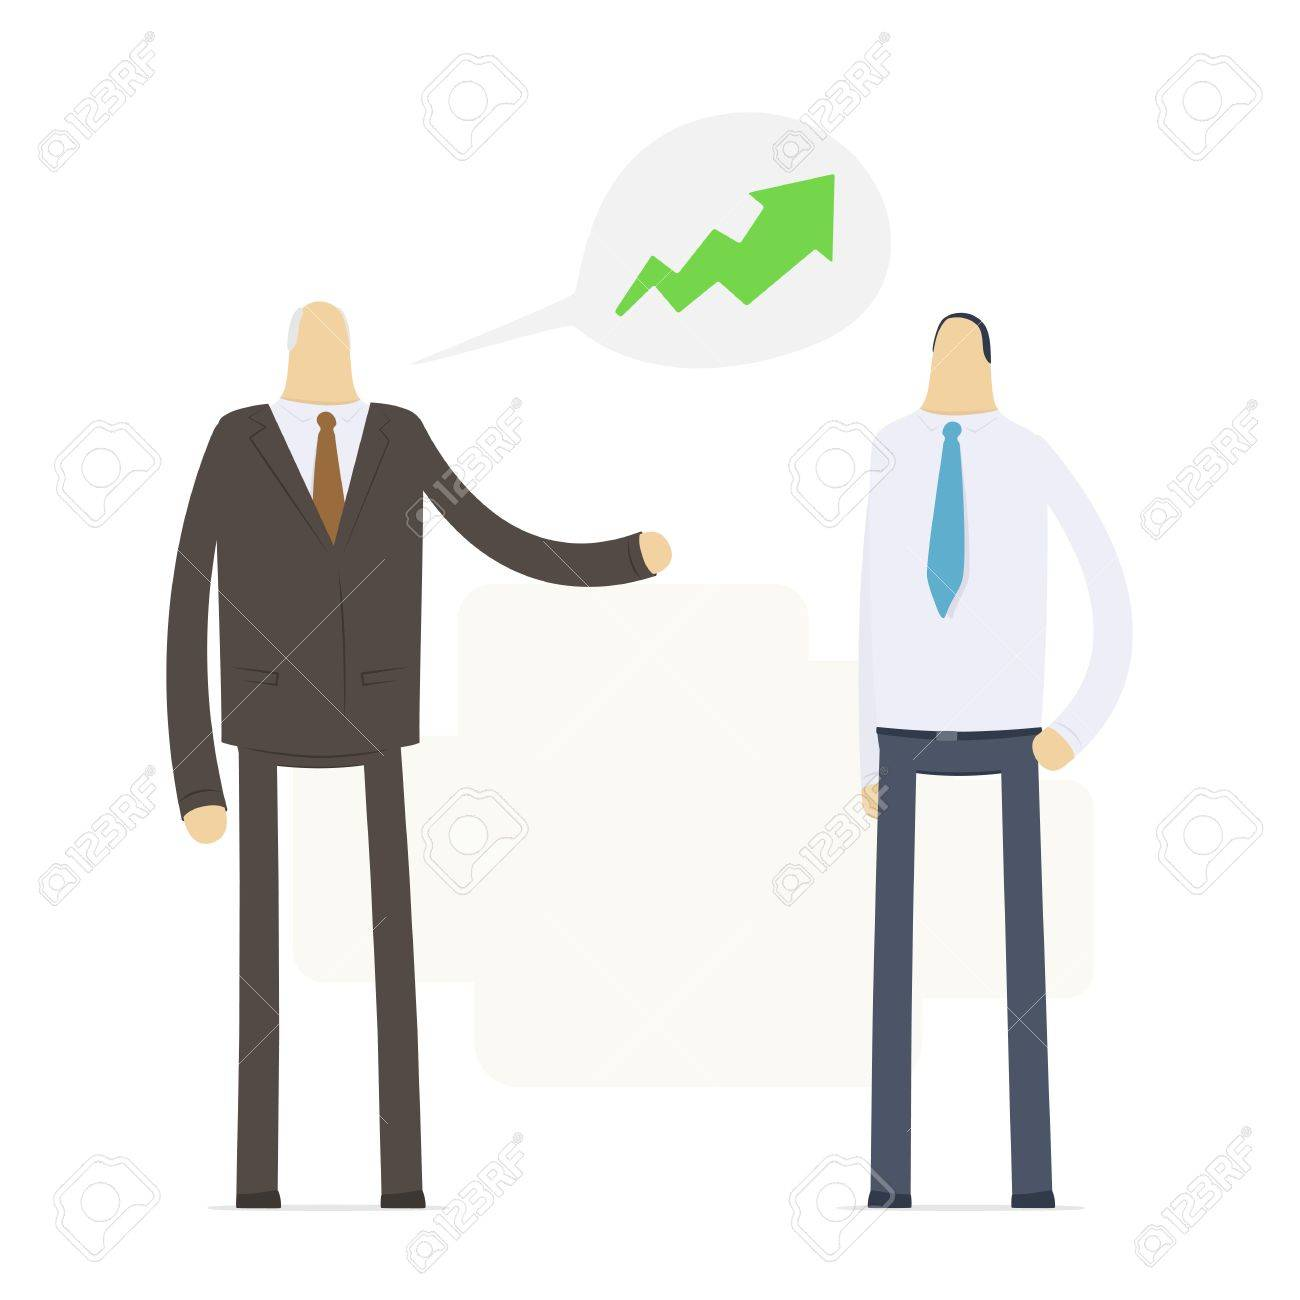 boss praises an employee for good performance royalty boss praises an employee for good performance stock vector 16550138